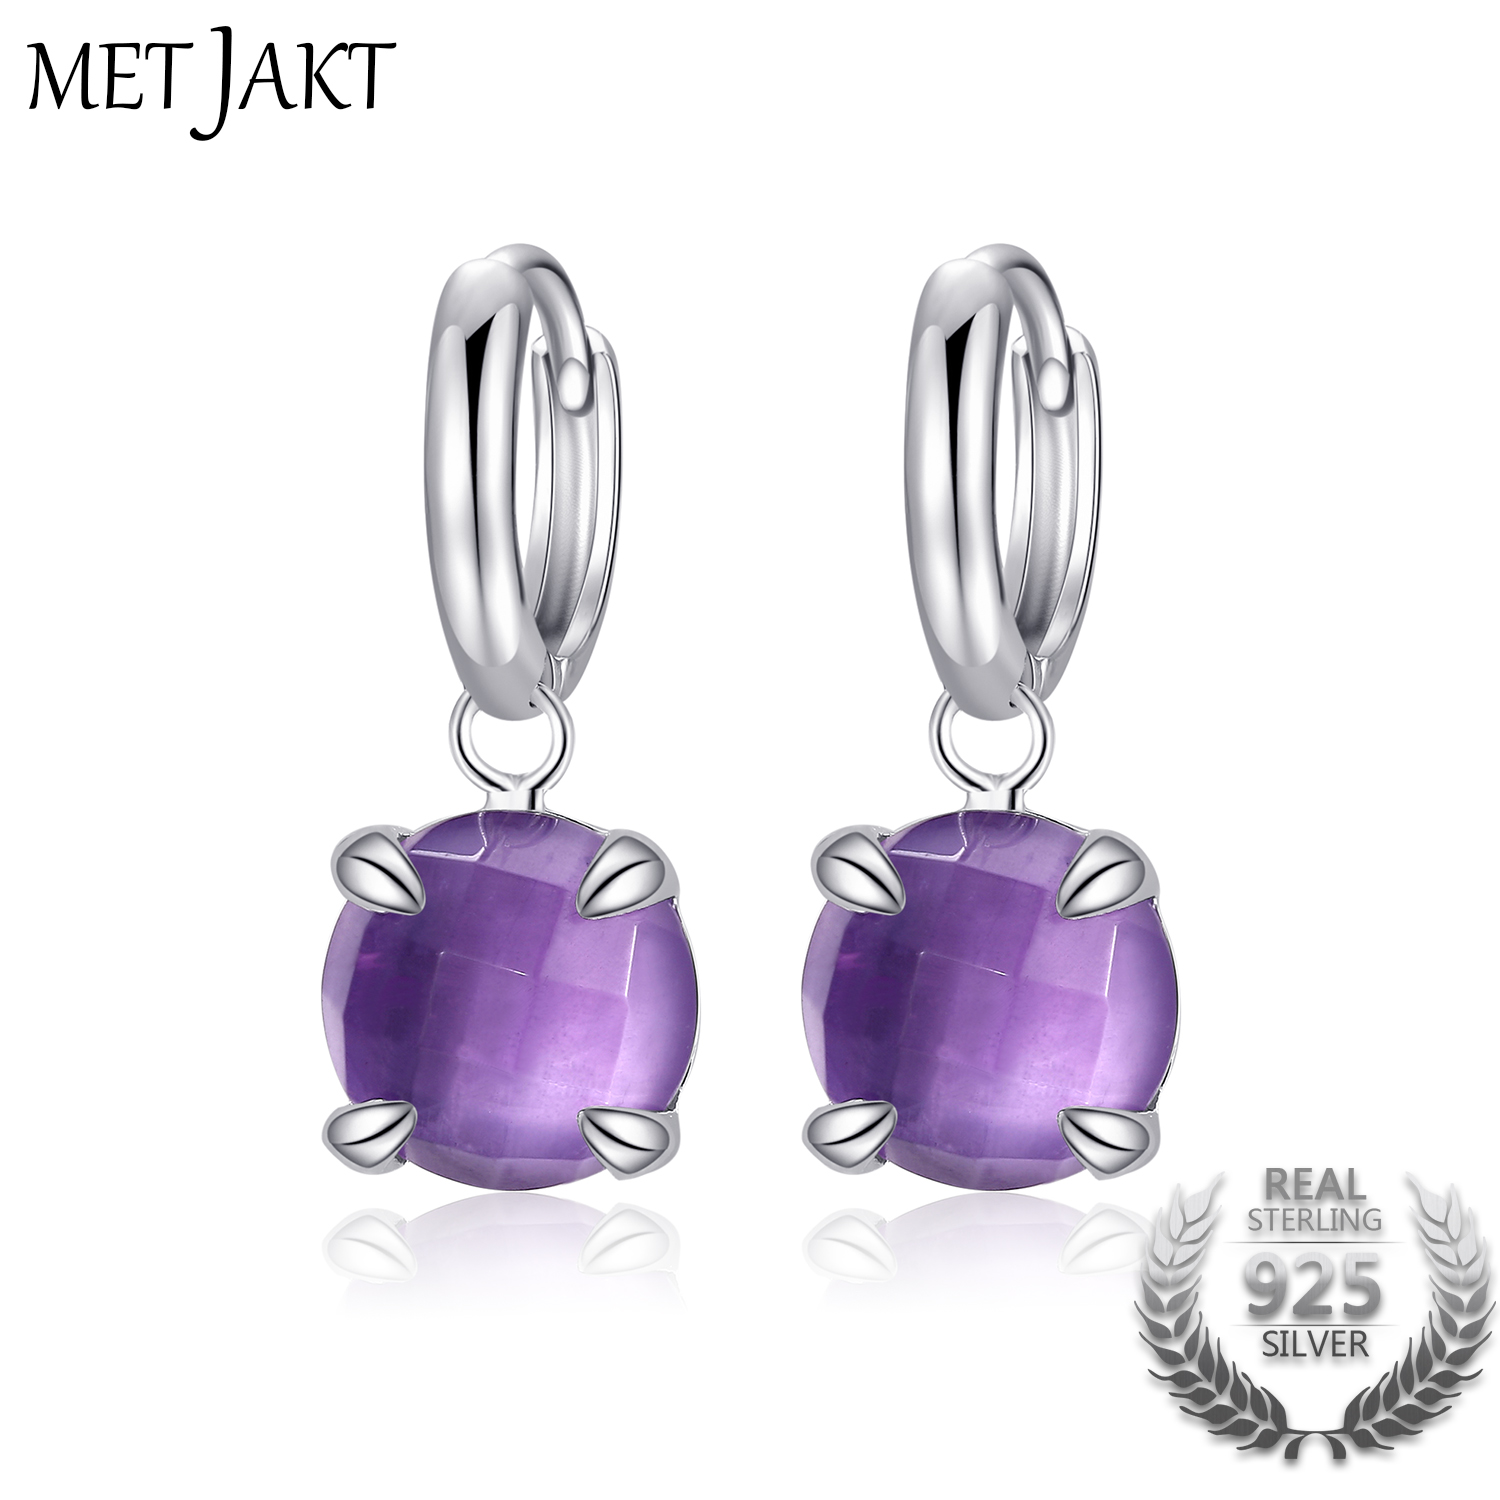 Authentic Natural Amethyst Gemstone High-end Elegant Classic 925 Sterling Silver Earrings for MetJakt Women's Fine Jewelry 9UGyHEM